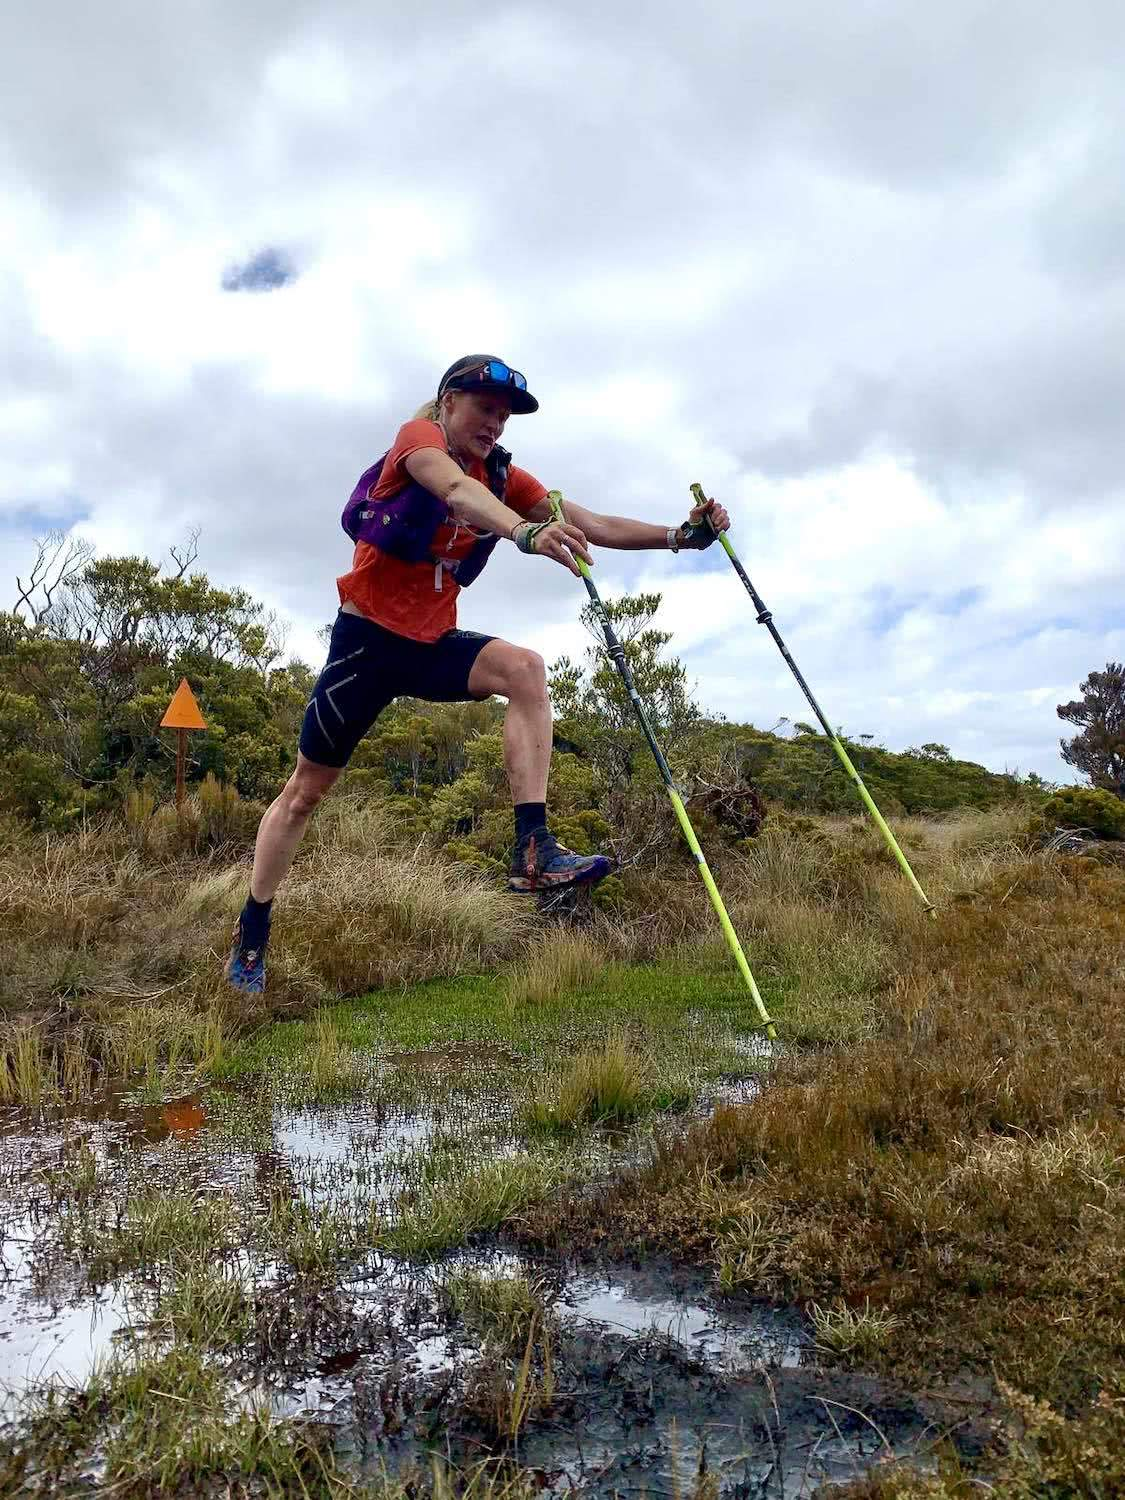 Lucy Clark Has Run New Zealand In 66 Days, lucy clark, te araroa, fastest known time, new zealand, puddle, poles